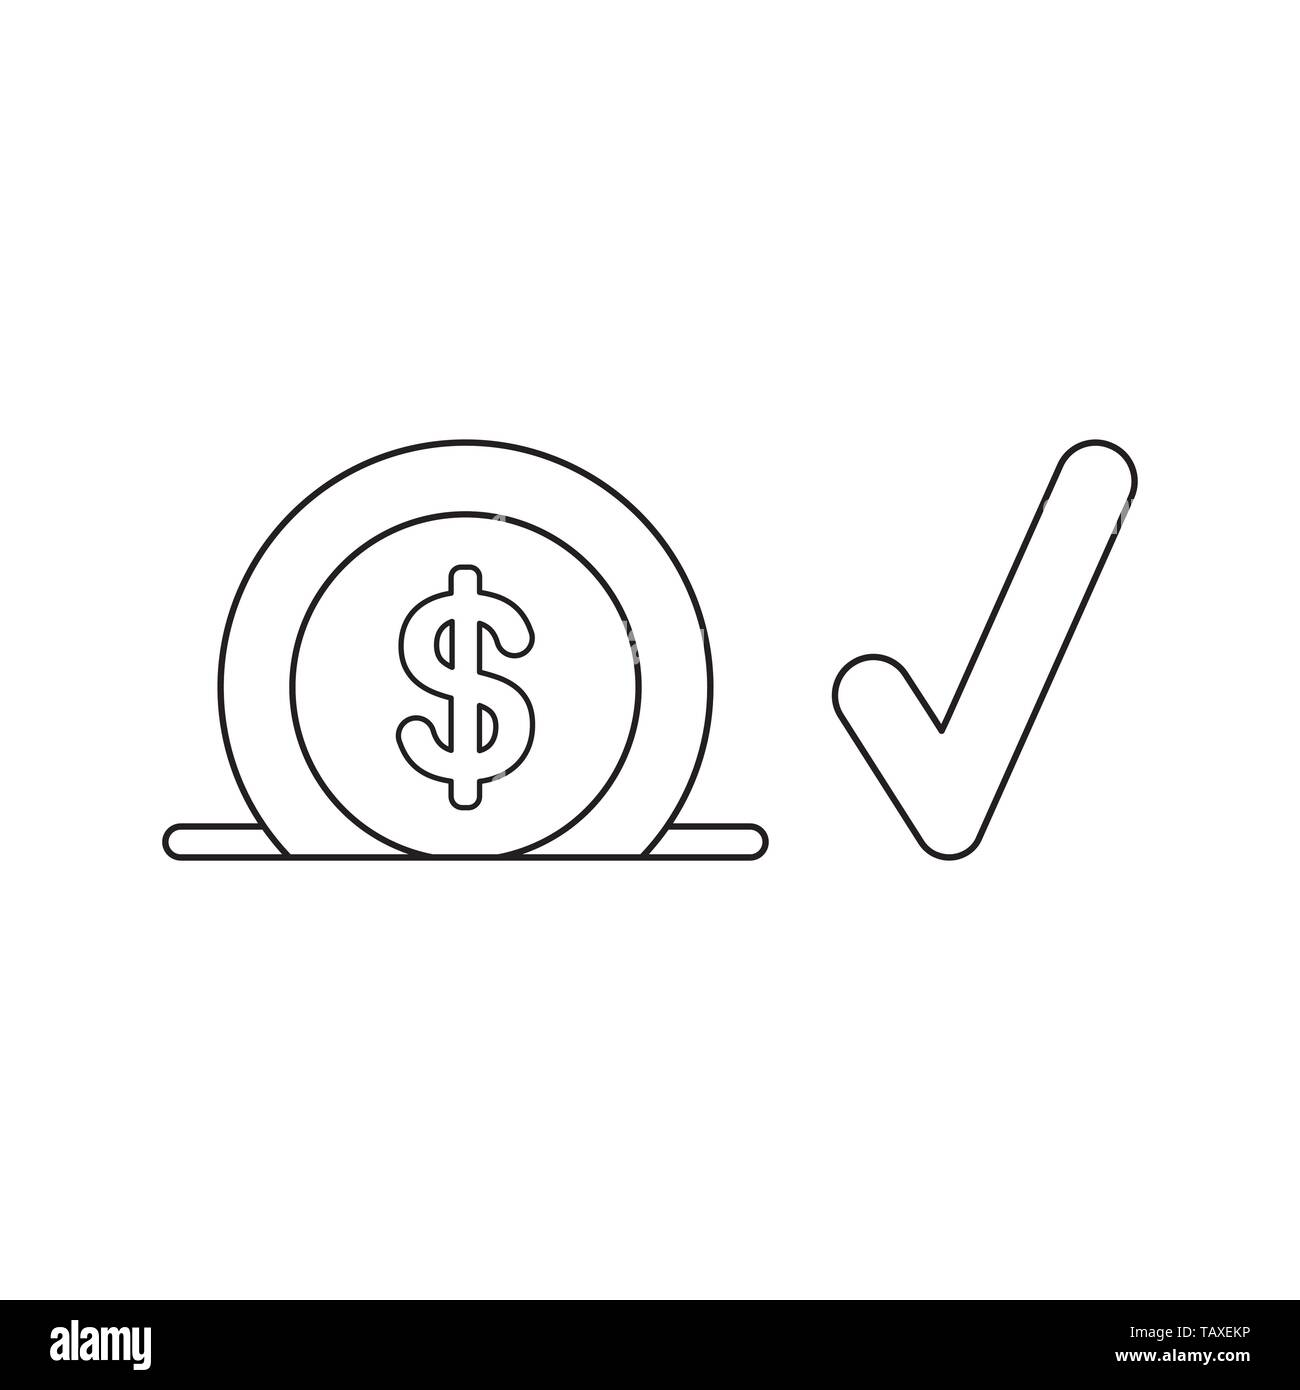 Vector icon concept of dollar into moneybox hole with check mark. Black outlines. Stock Vector